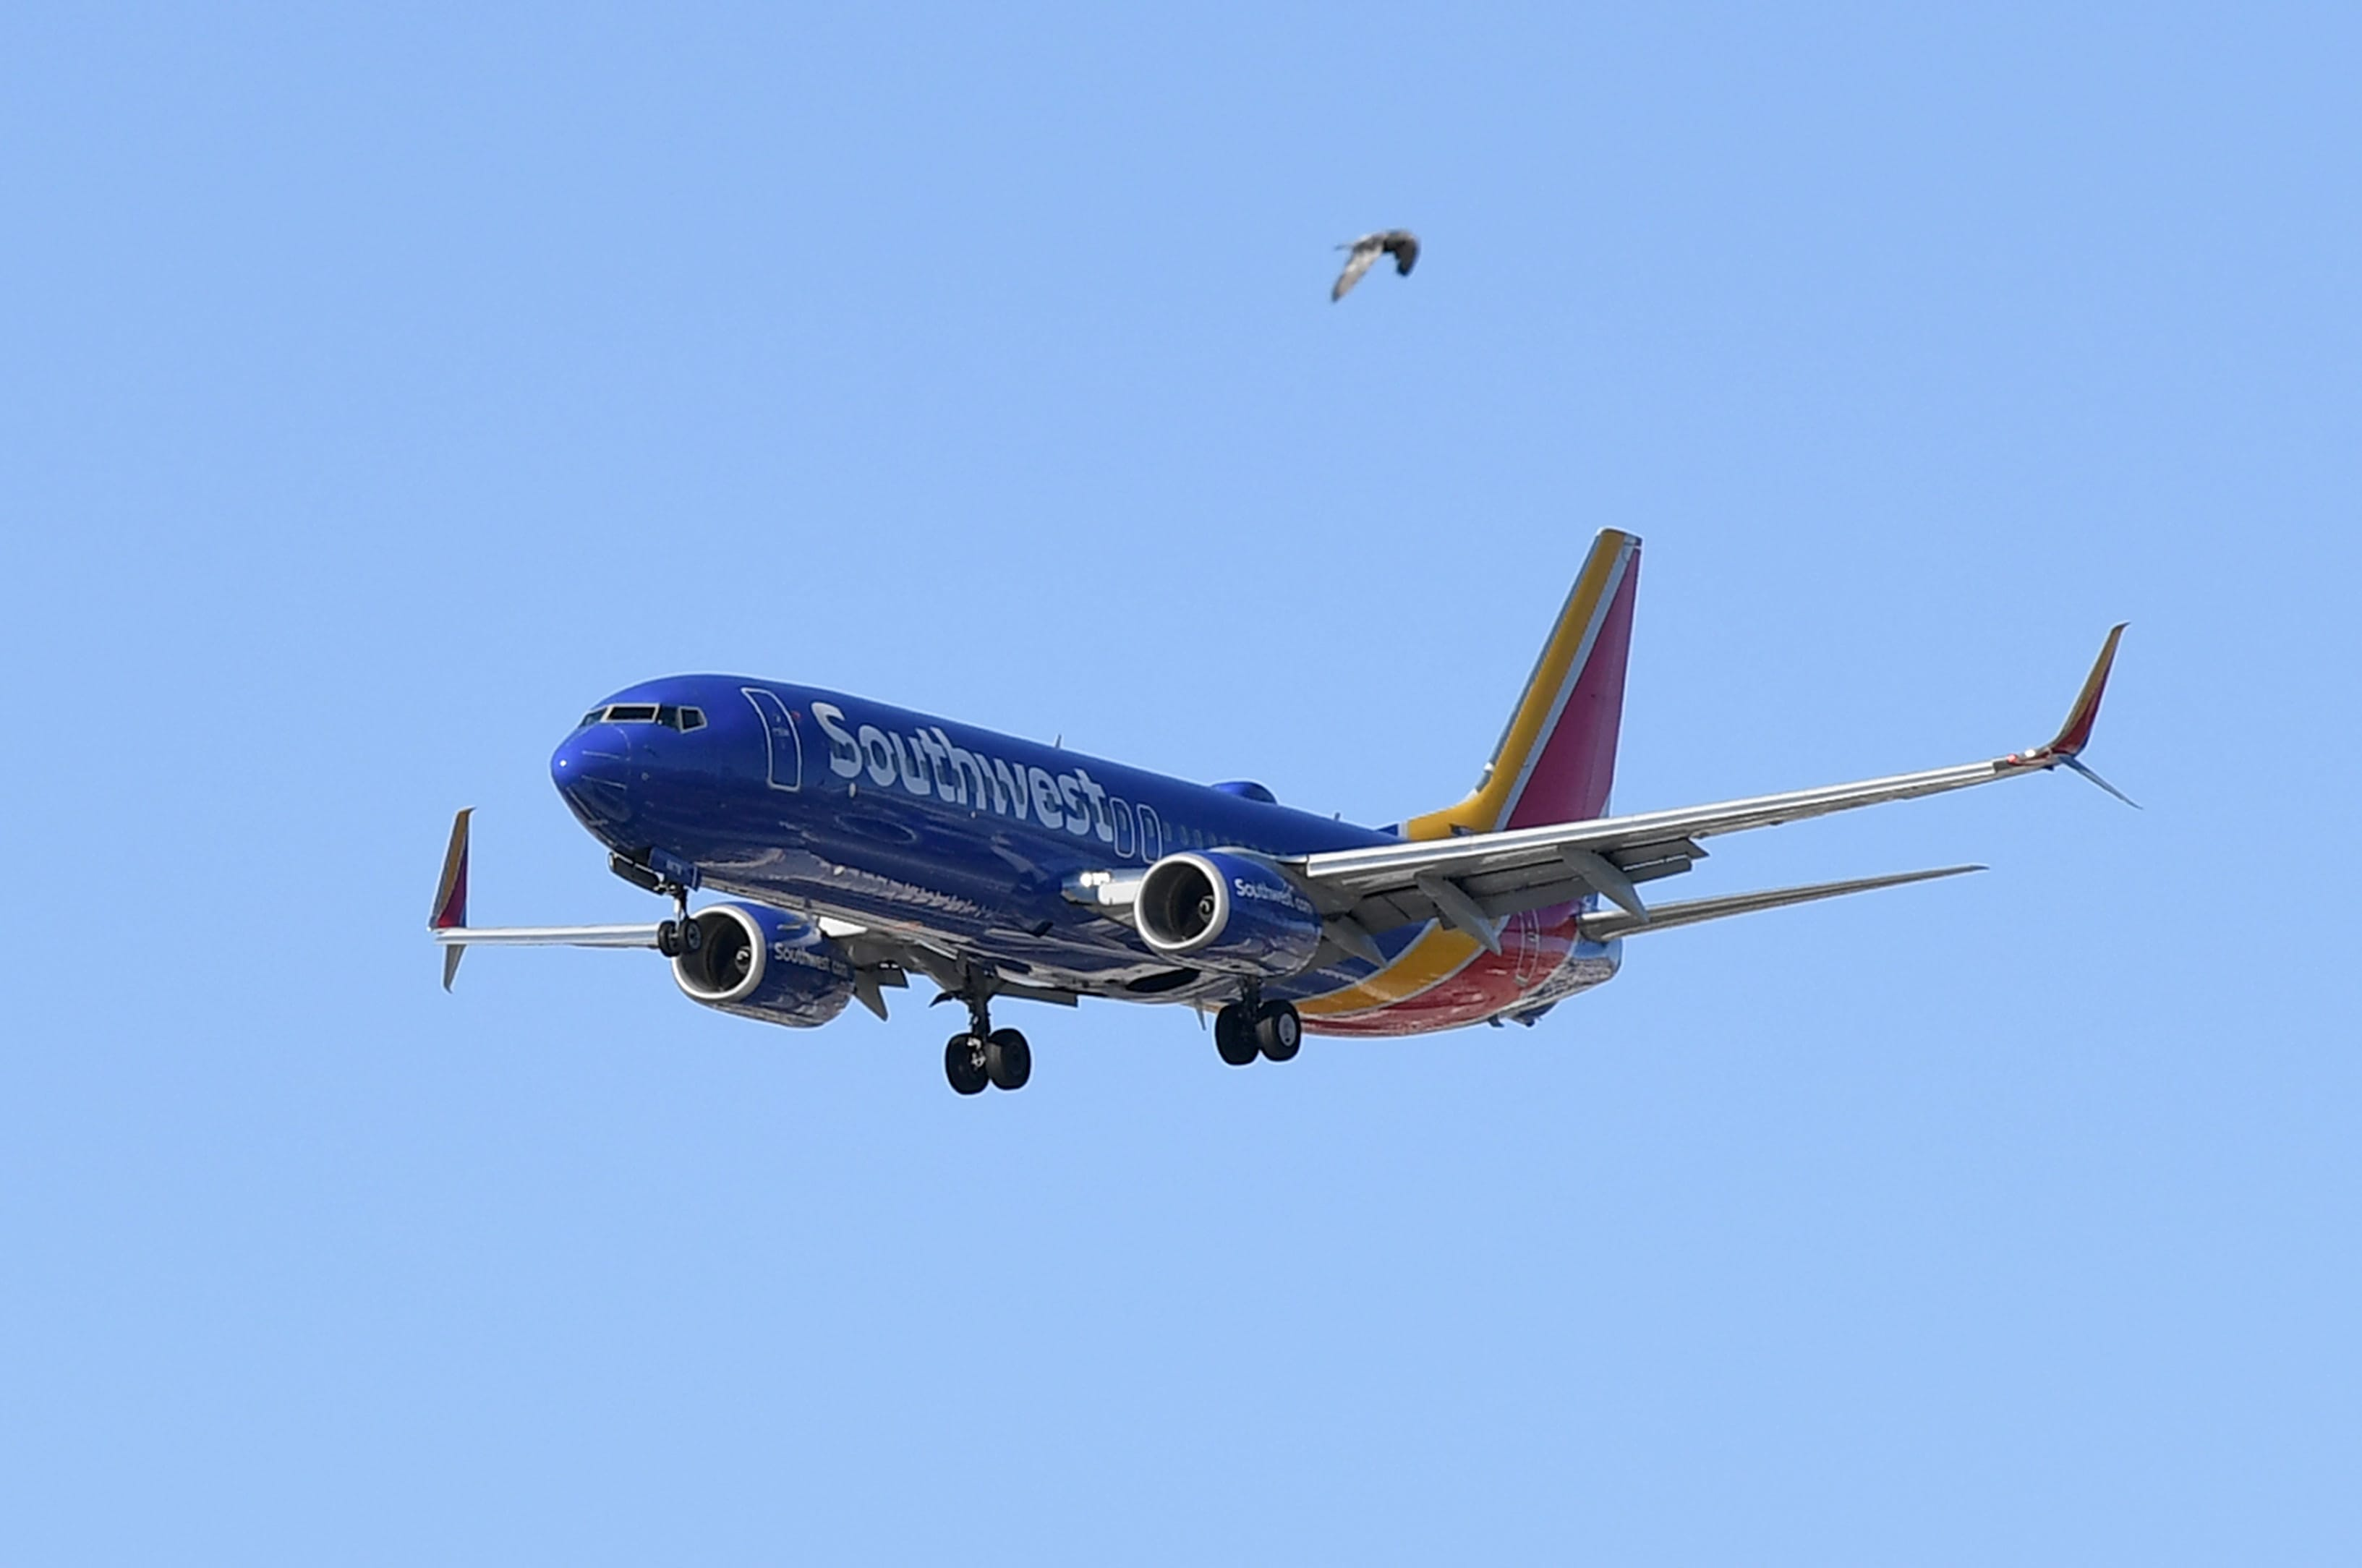 American, Southwest postponed plans to serve alcohol after guest interruptions, assault on board thumbnail